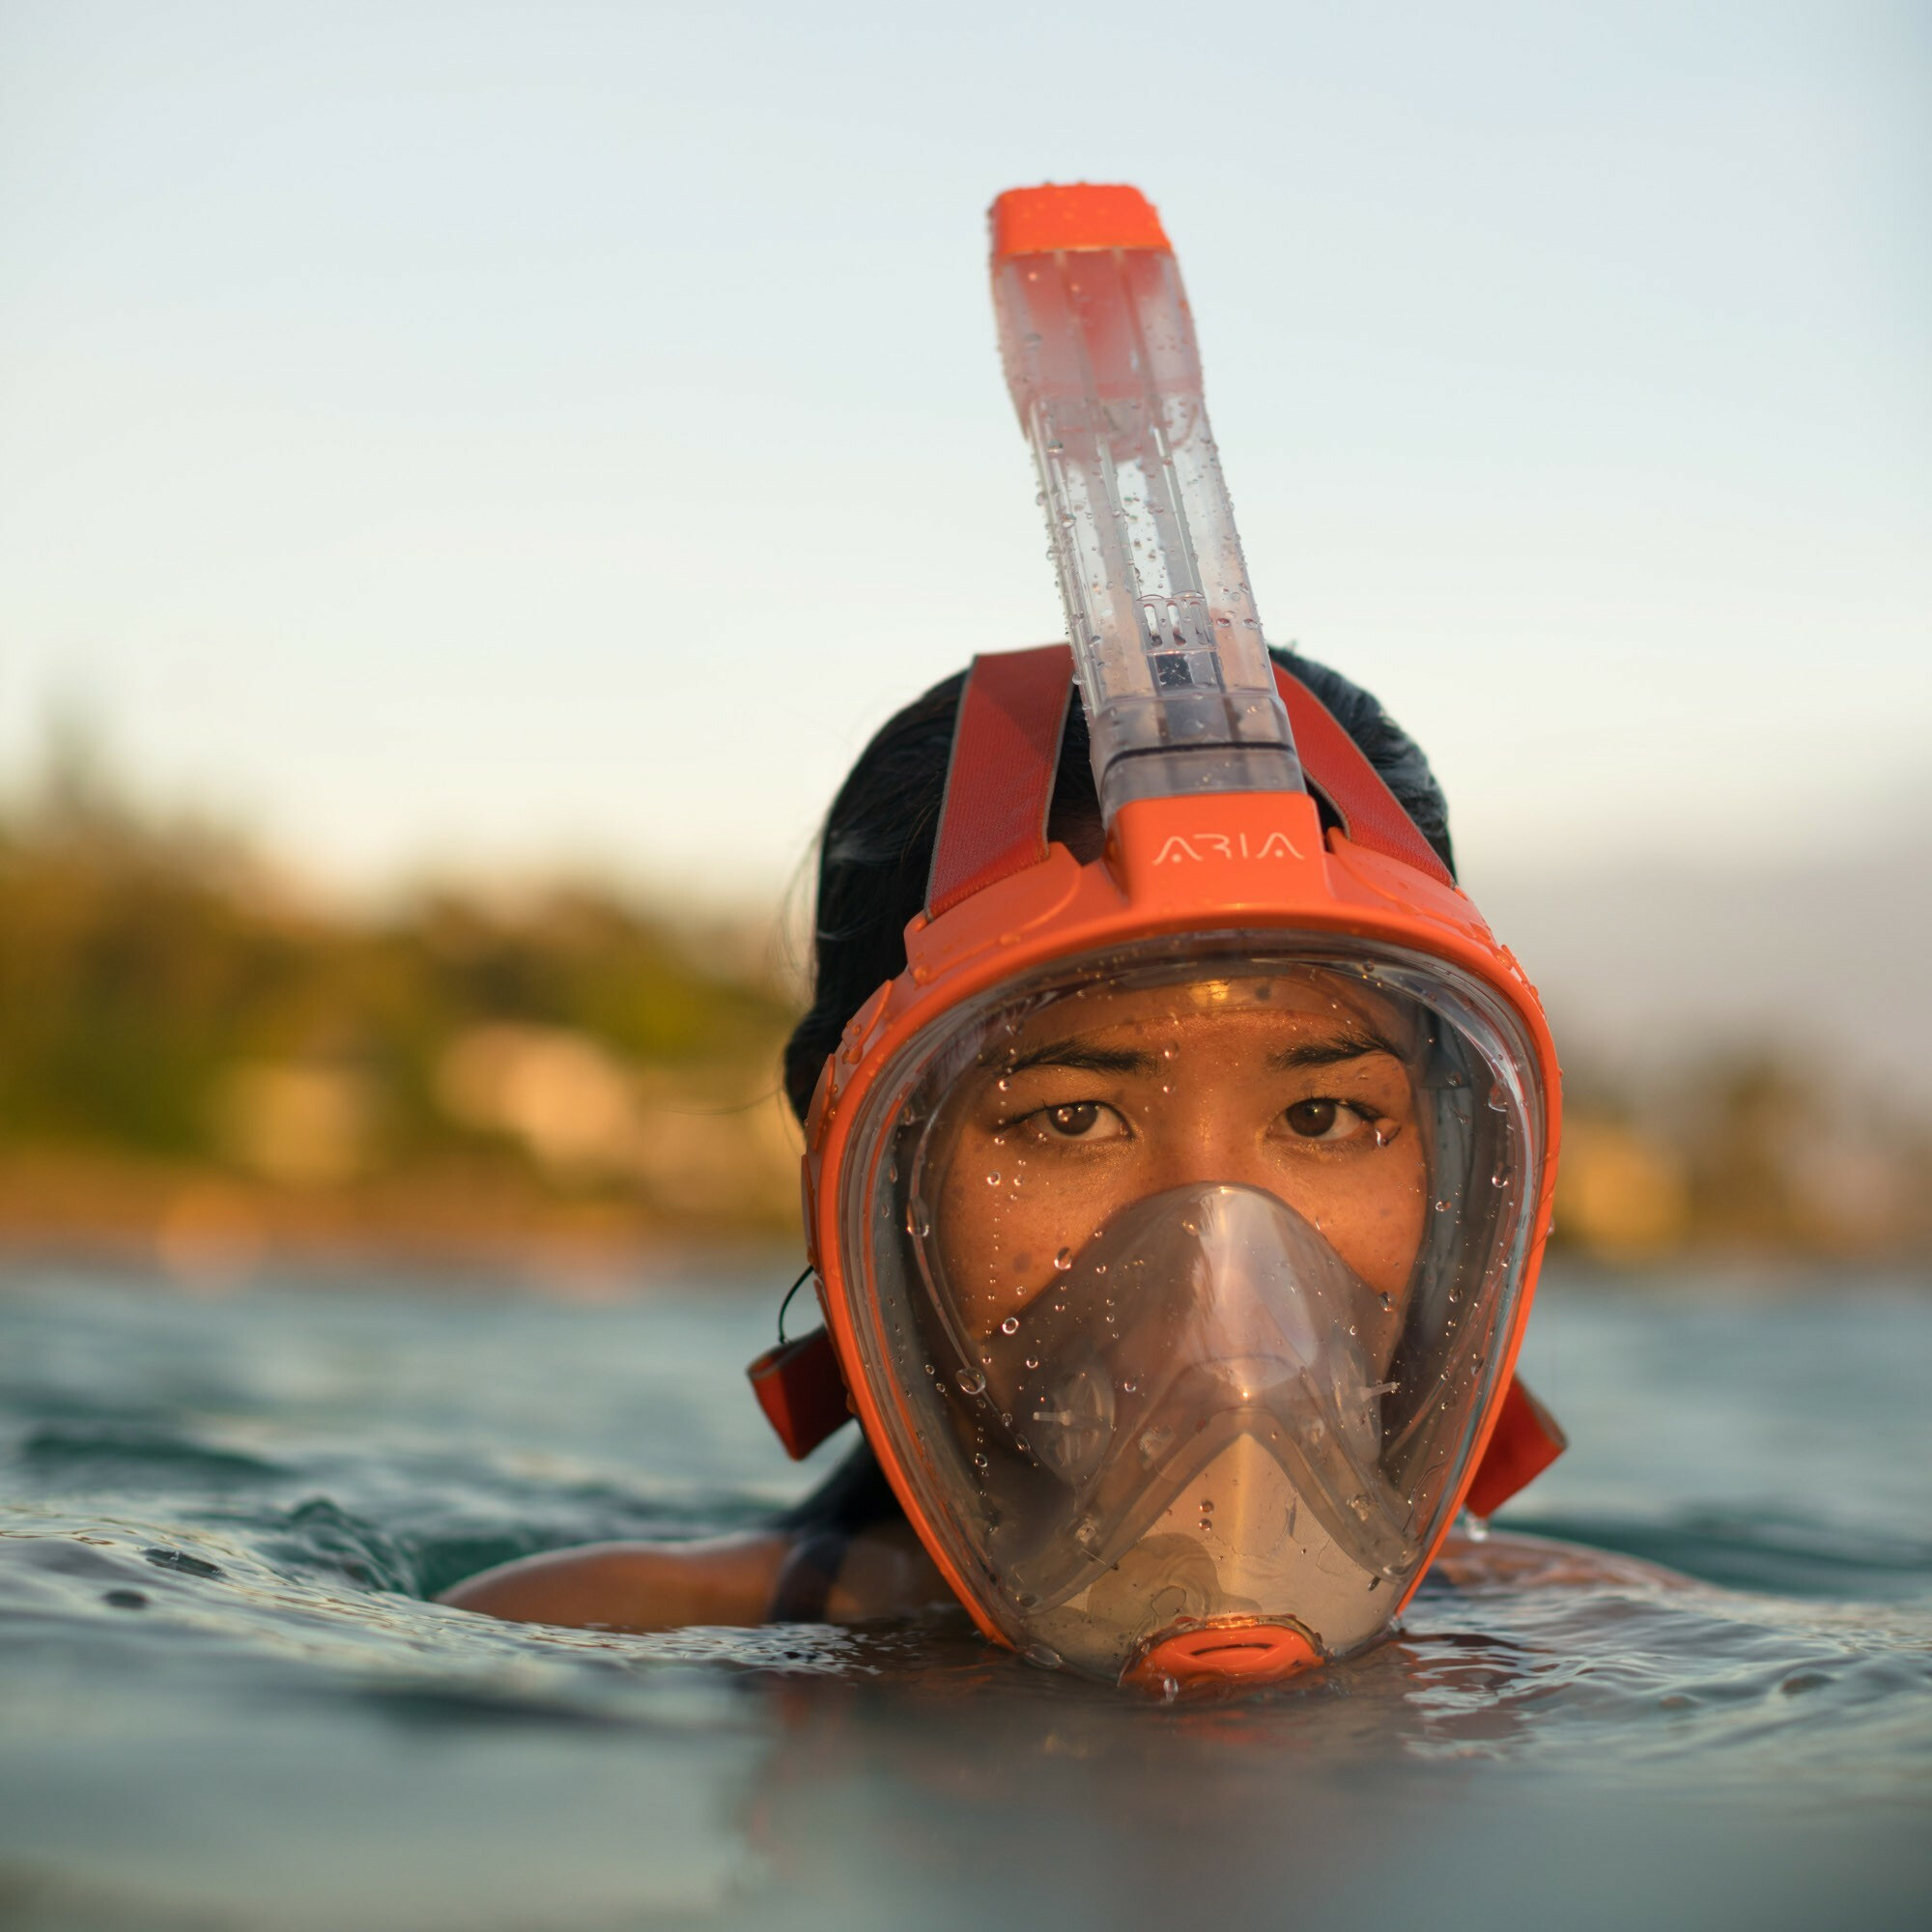 Ocean Reef Aria QR+ Full Face Snorkel Mask with Camera Holder Lifestyle